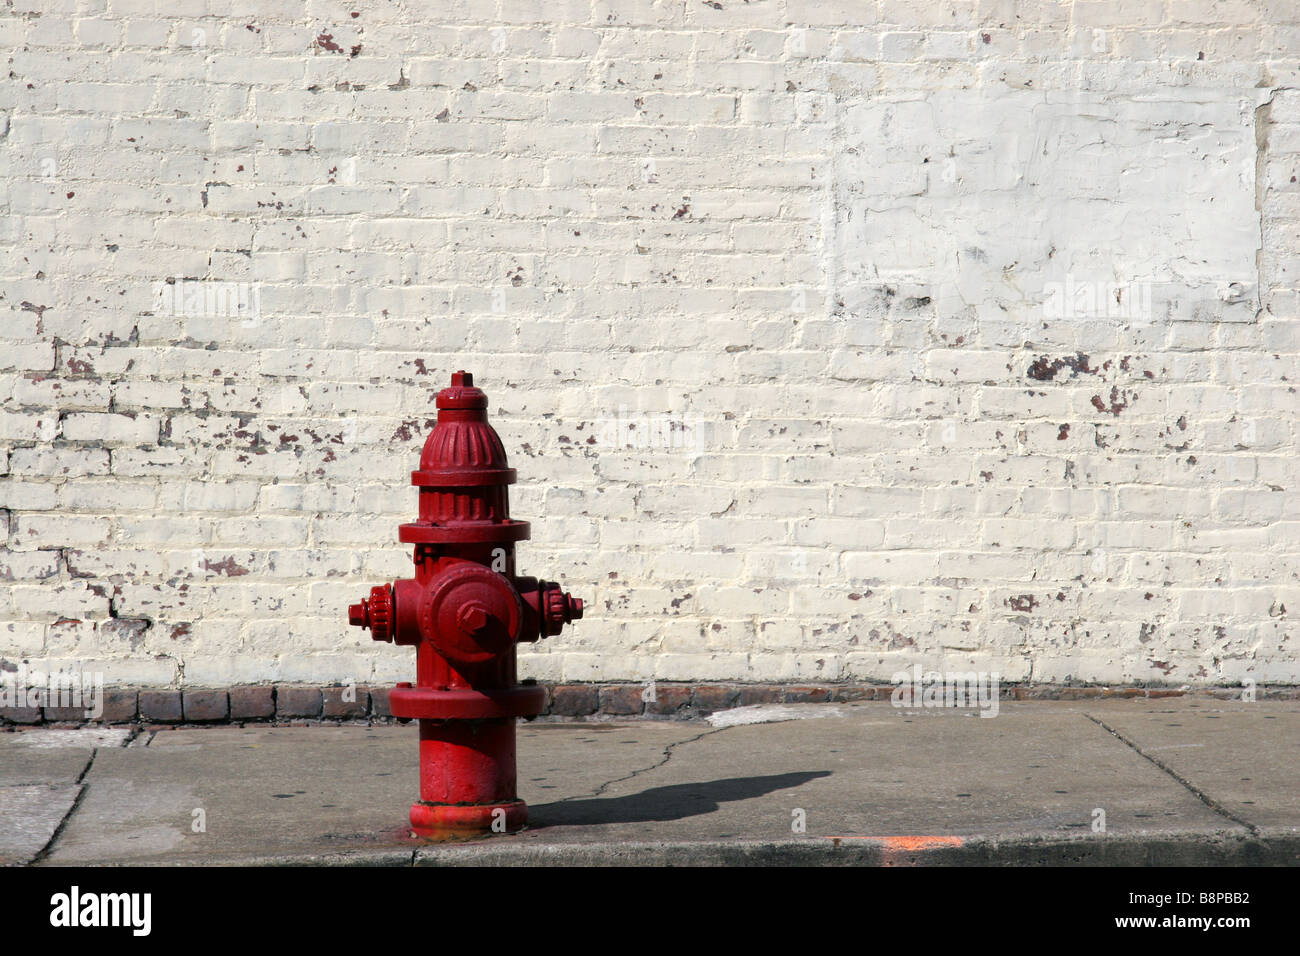 American Fire Hose And Cabinet Wall Hydrant Stock Photos Wall Hydrant Stock Images Alamy